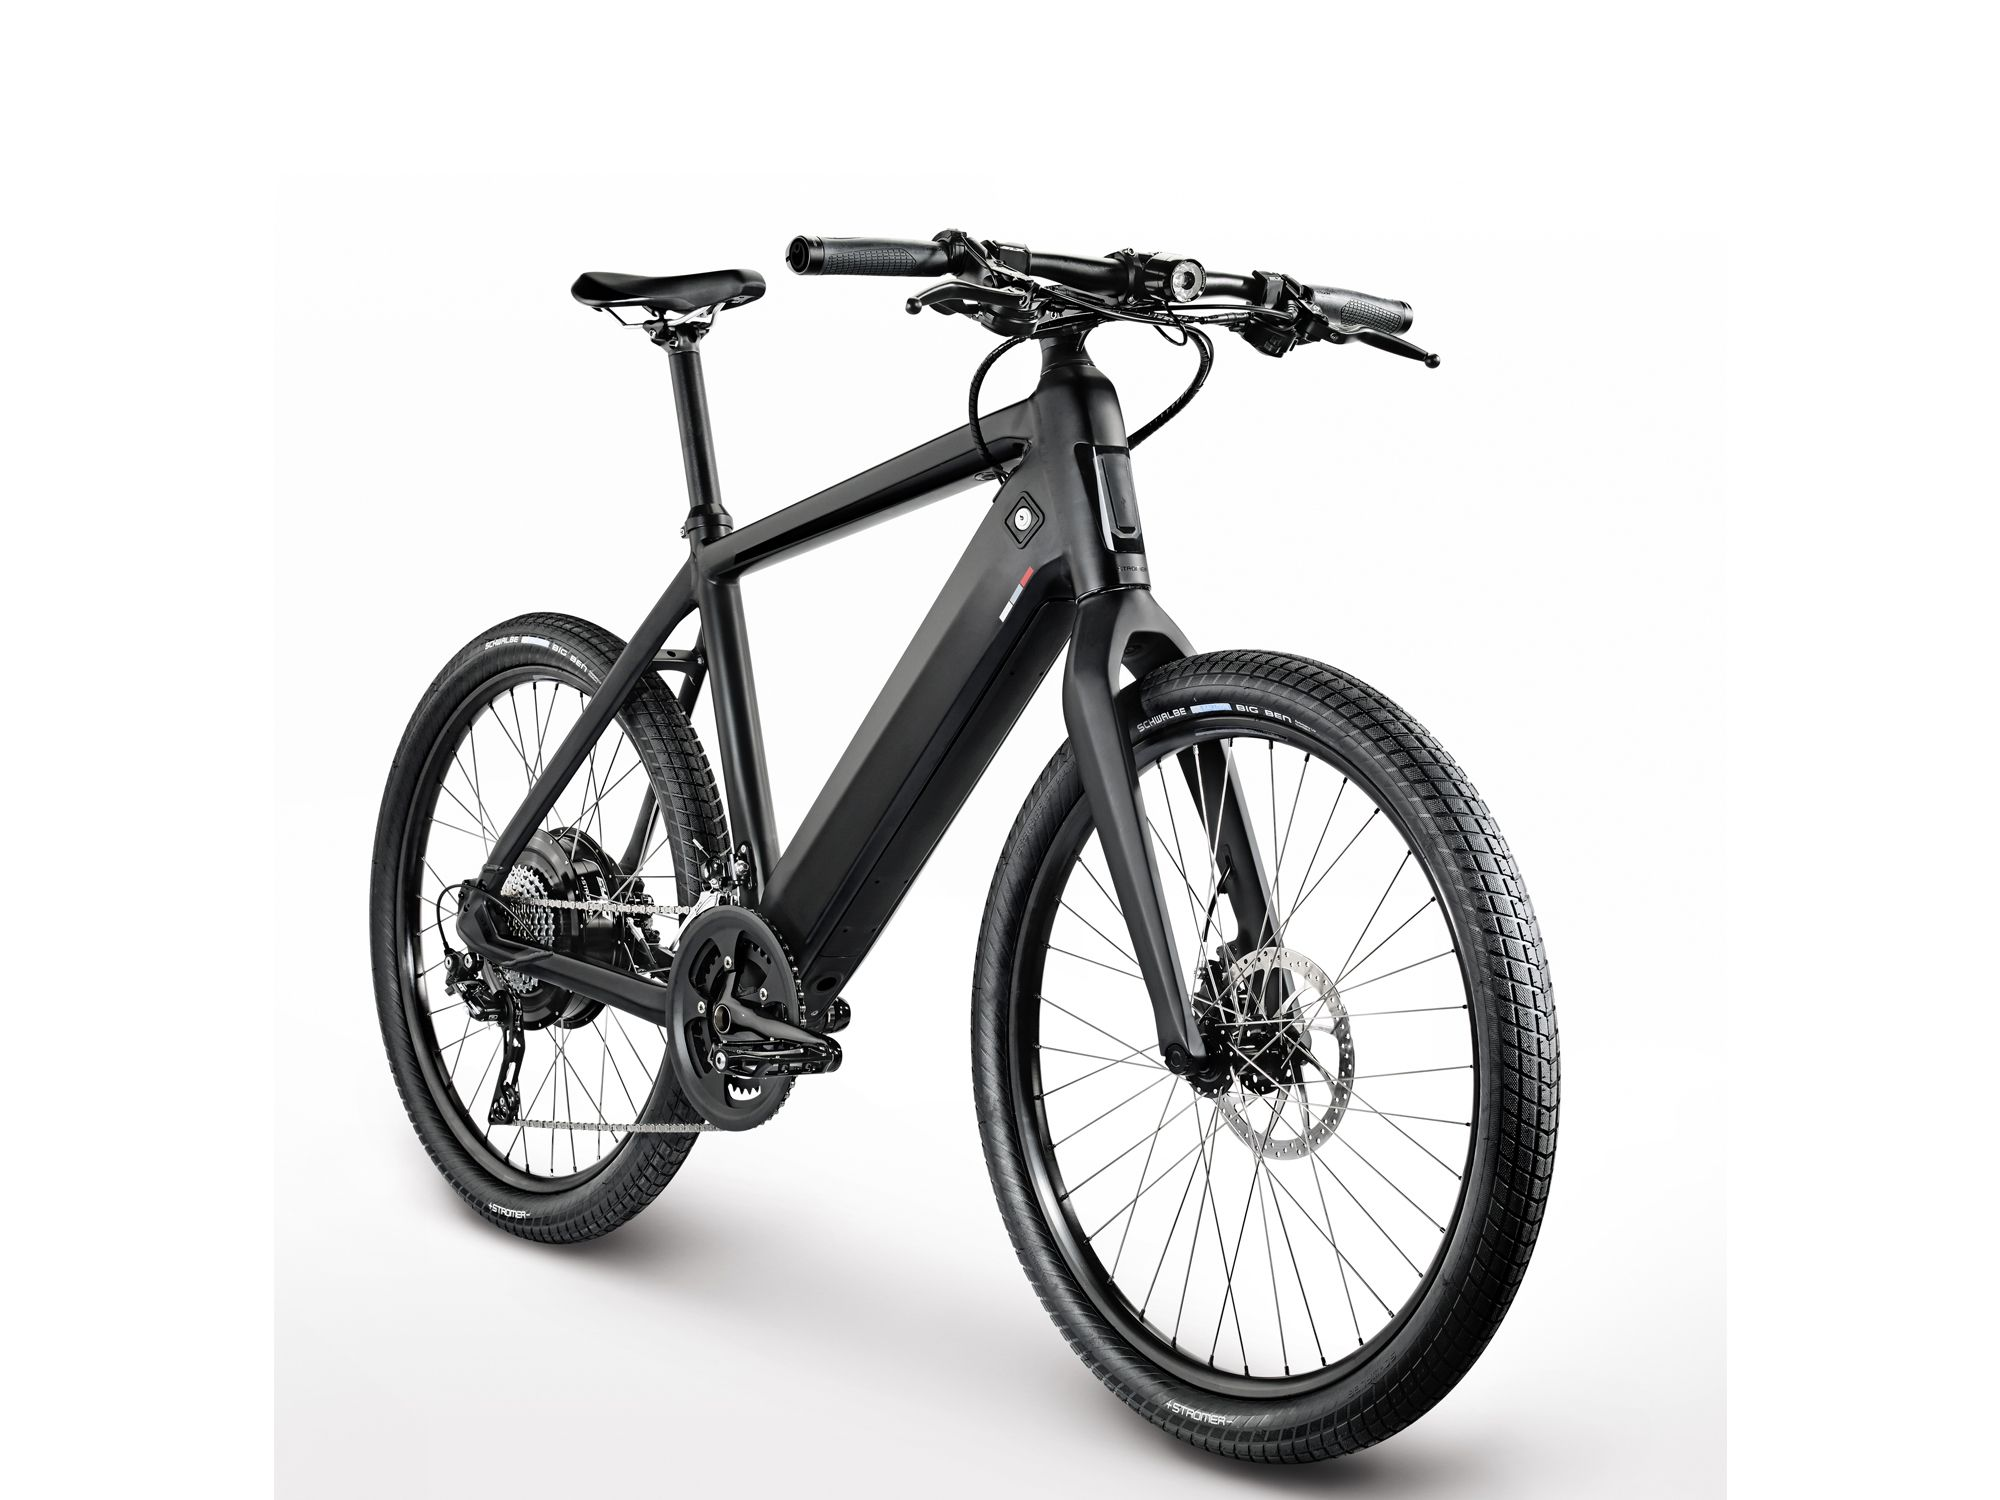 8 high end bicycles worth selling your car for Custom Motorcycle Gallery